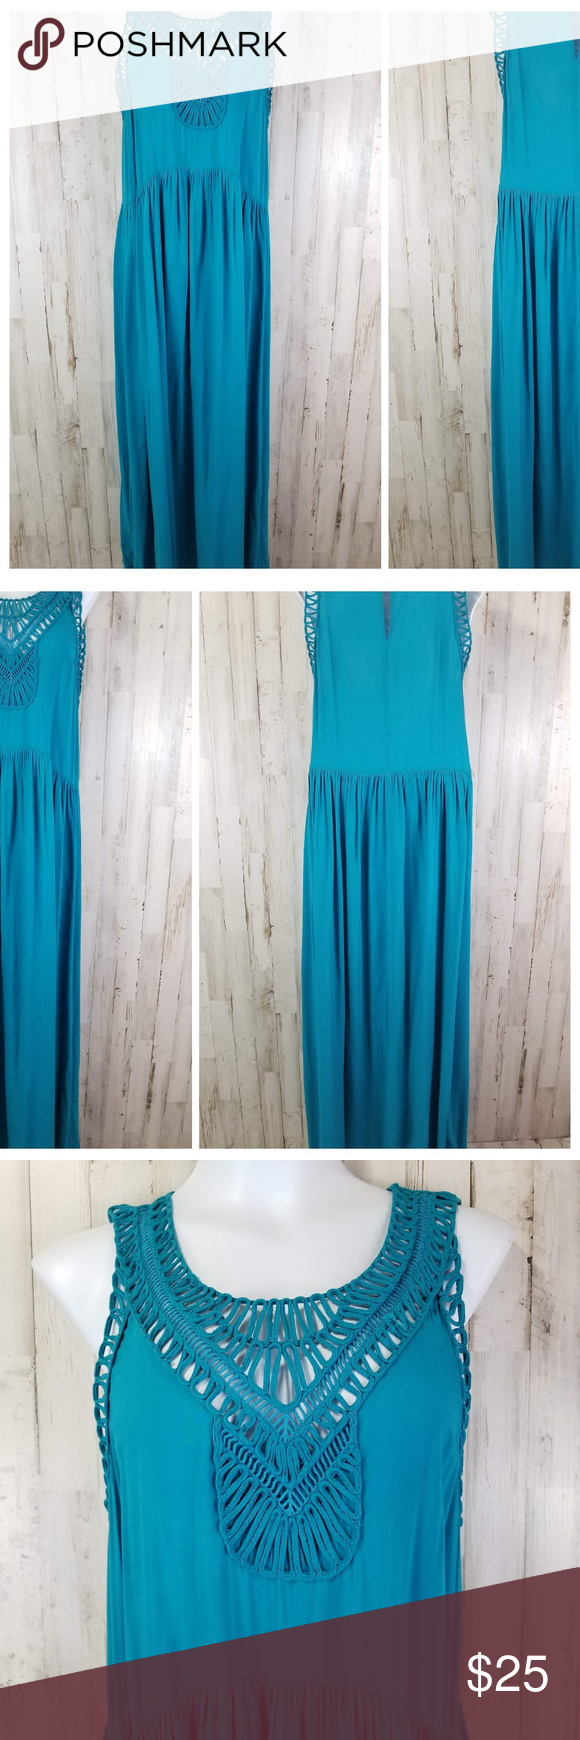 1f80064b681d Anthropologie Mermaid Womens Maxi Dress Turquoise Anthropologie Mermaid  Womens Maxi Dress Turquoise Sleeveless Macrame Day Size